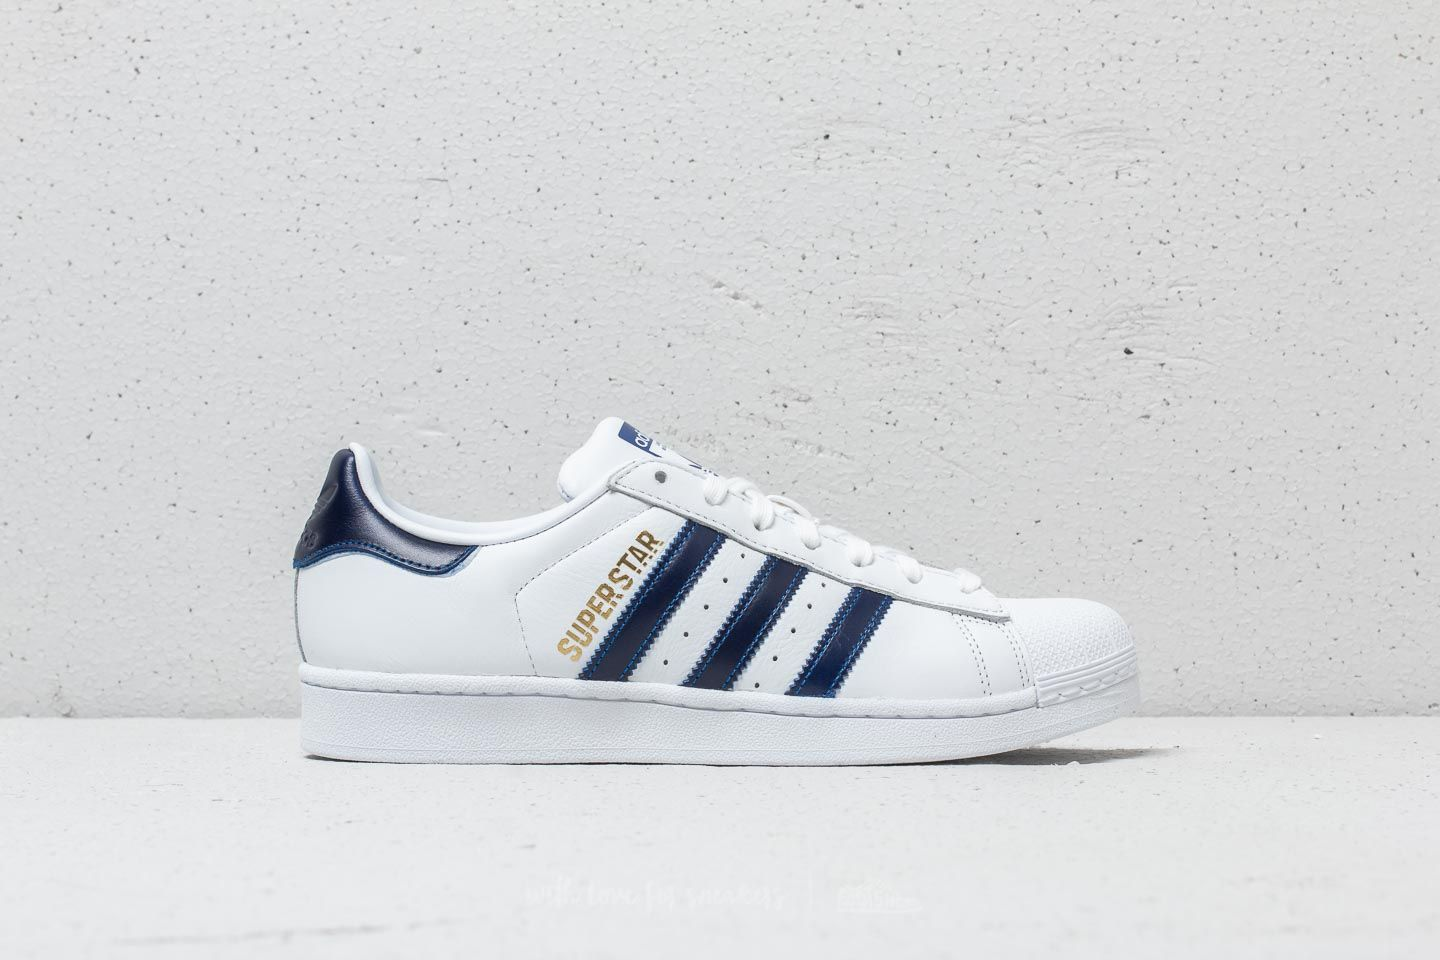 meet 66aeb d93a9 adidas Superstar Ftw White Collegiate Royal Metallic Gold at a great  price 70 €